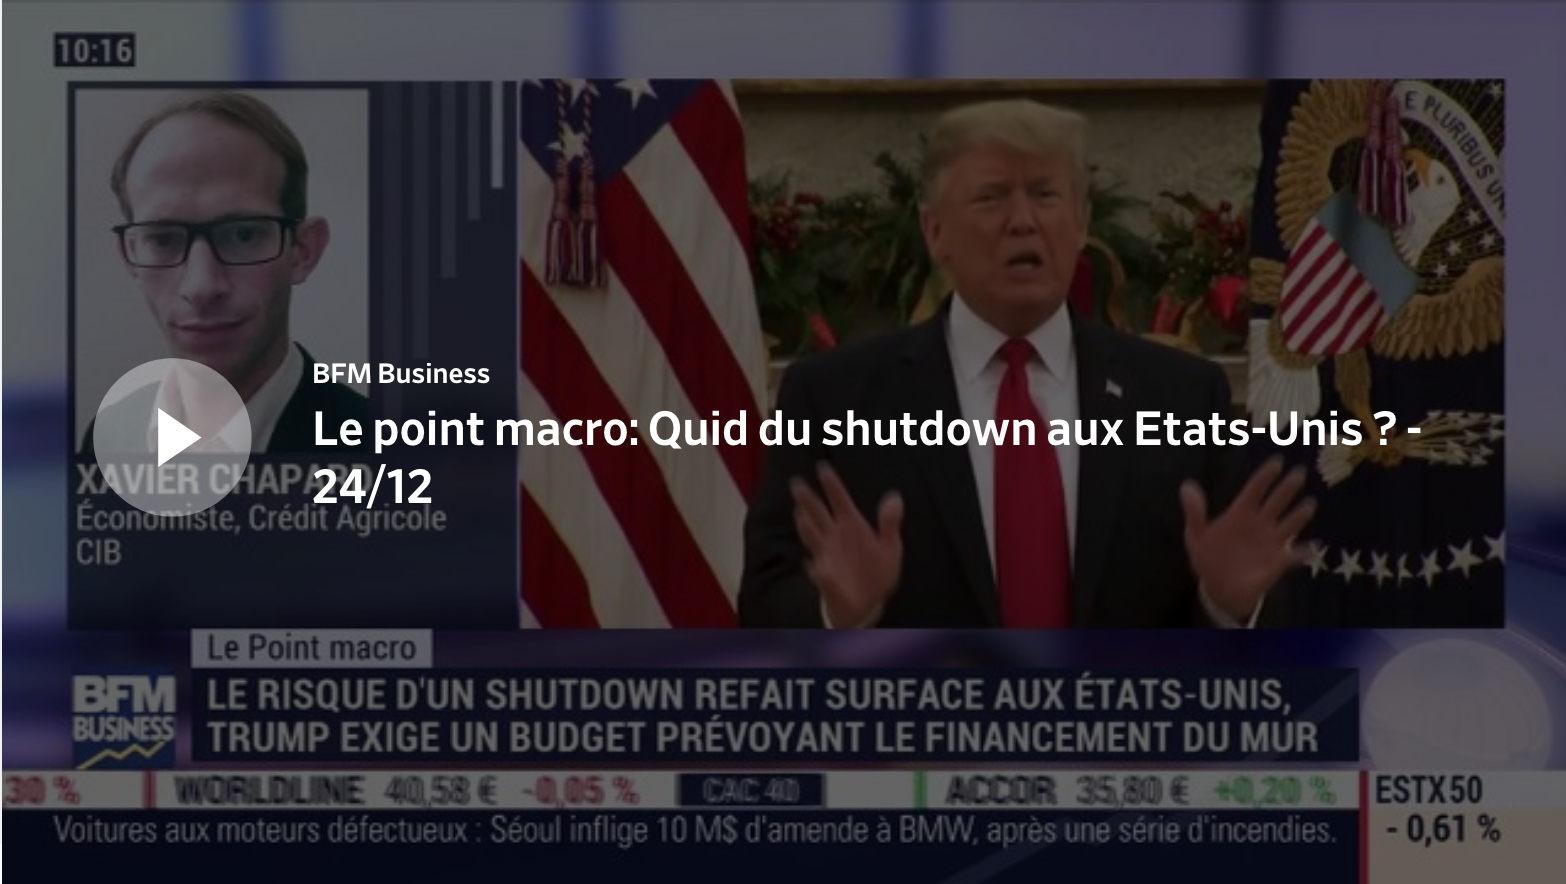 Le point macro: Quid du shutdown aux Etats-Unis ?